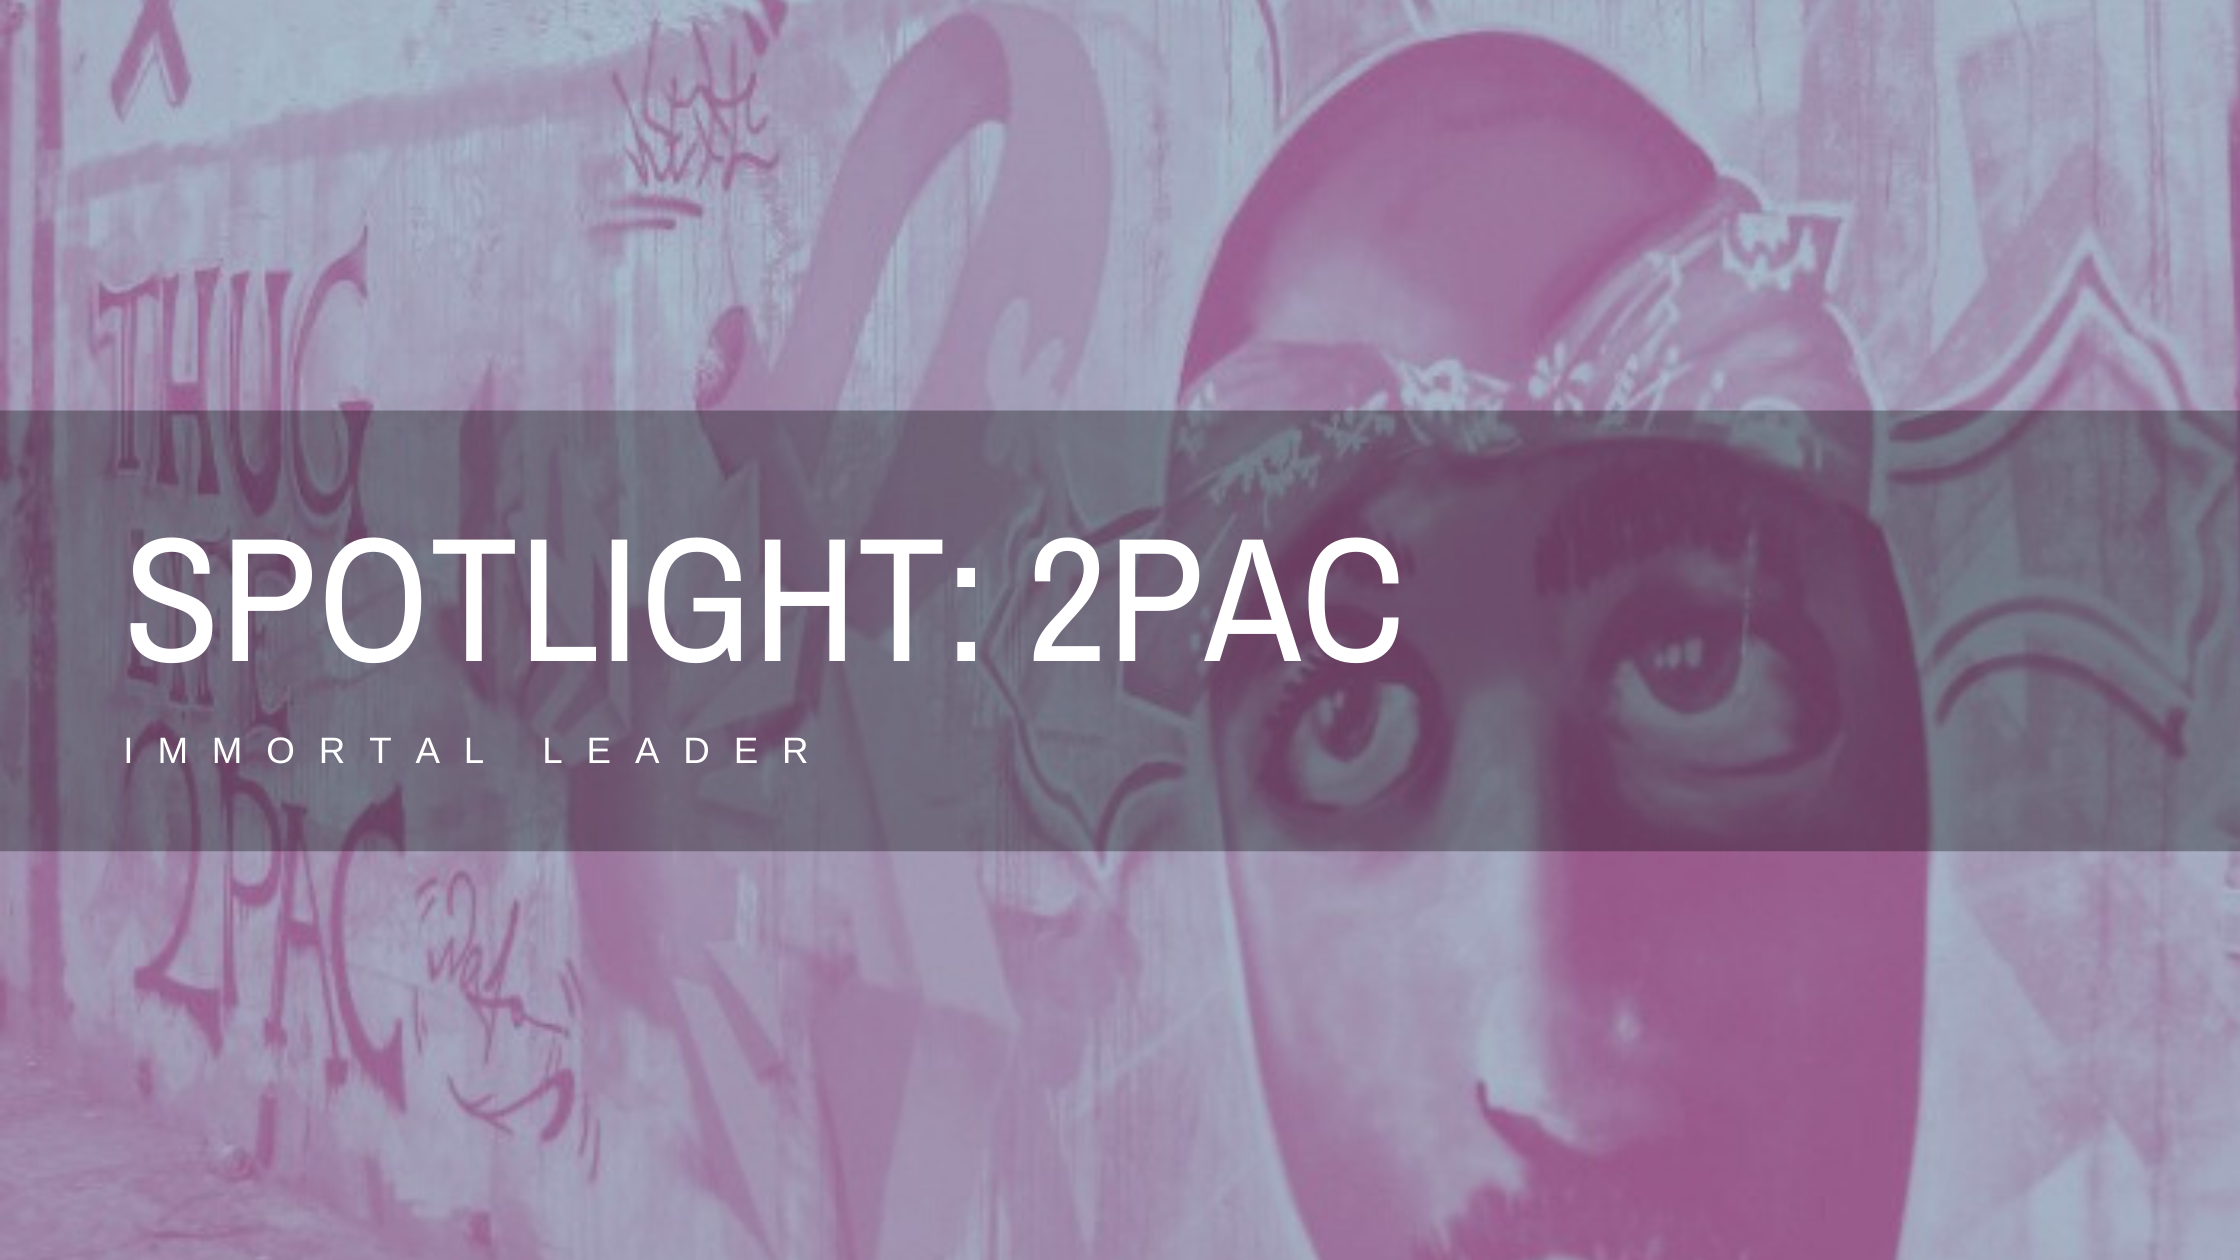 Immortal Leadership: 5 Things We Can Learn from Tupac